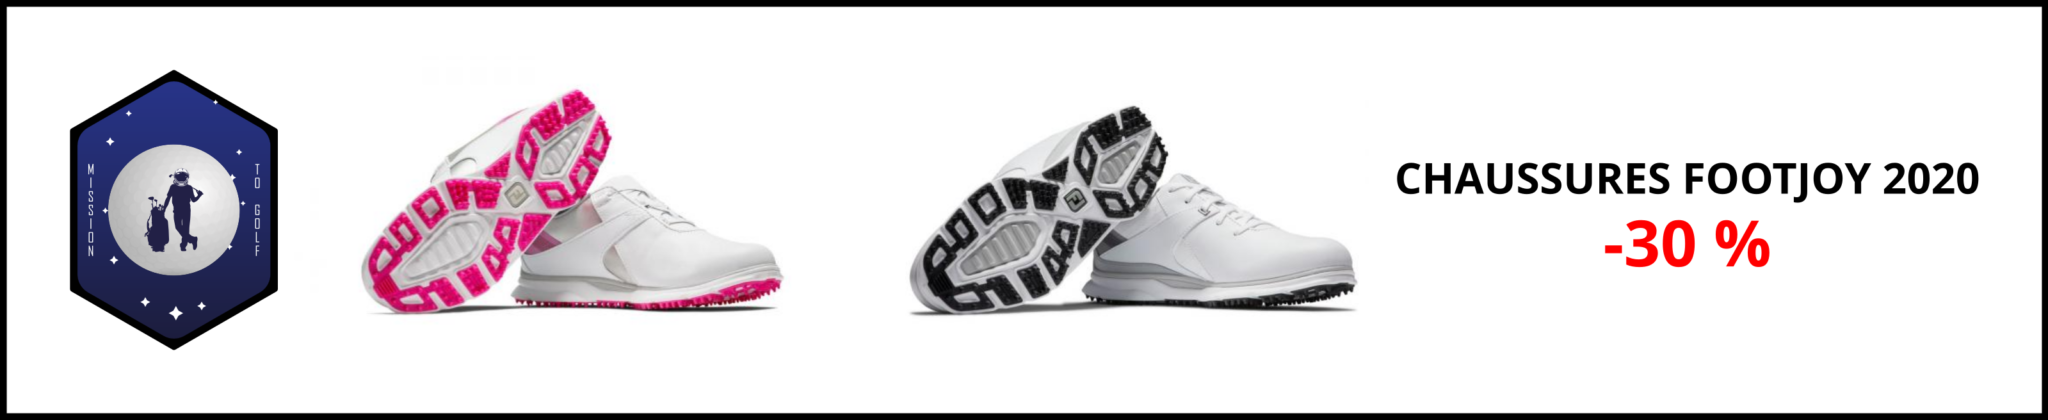 Chaussures Footjoy